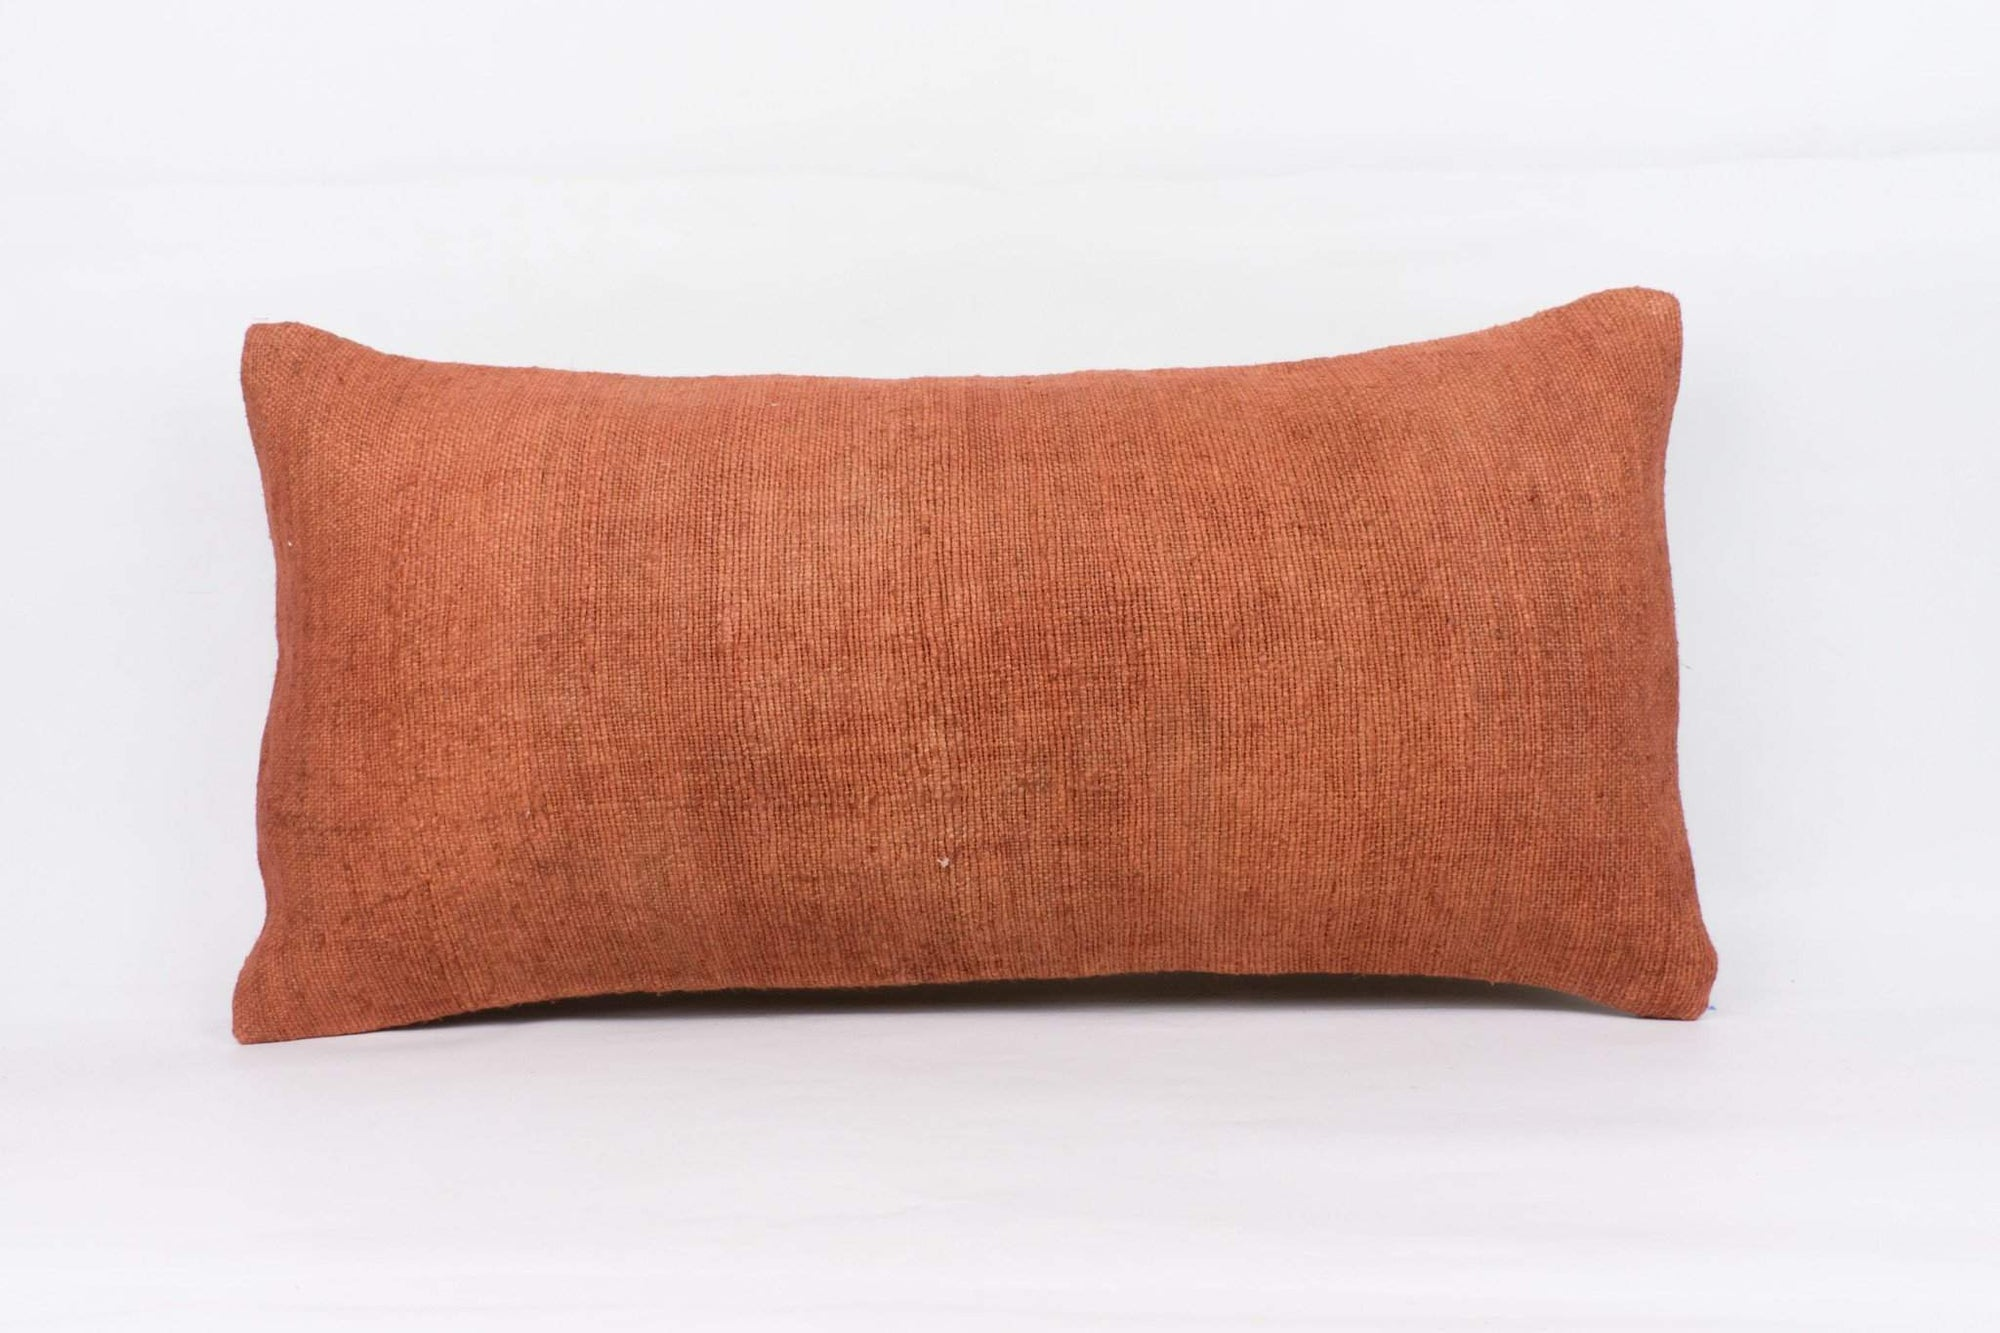 Plain Brown Kilim Pillow Cover 12x24 4179